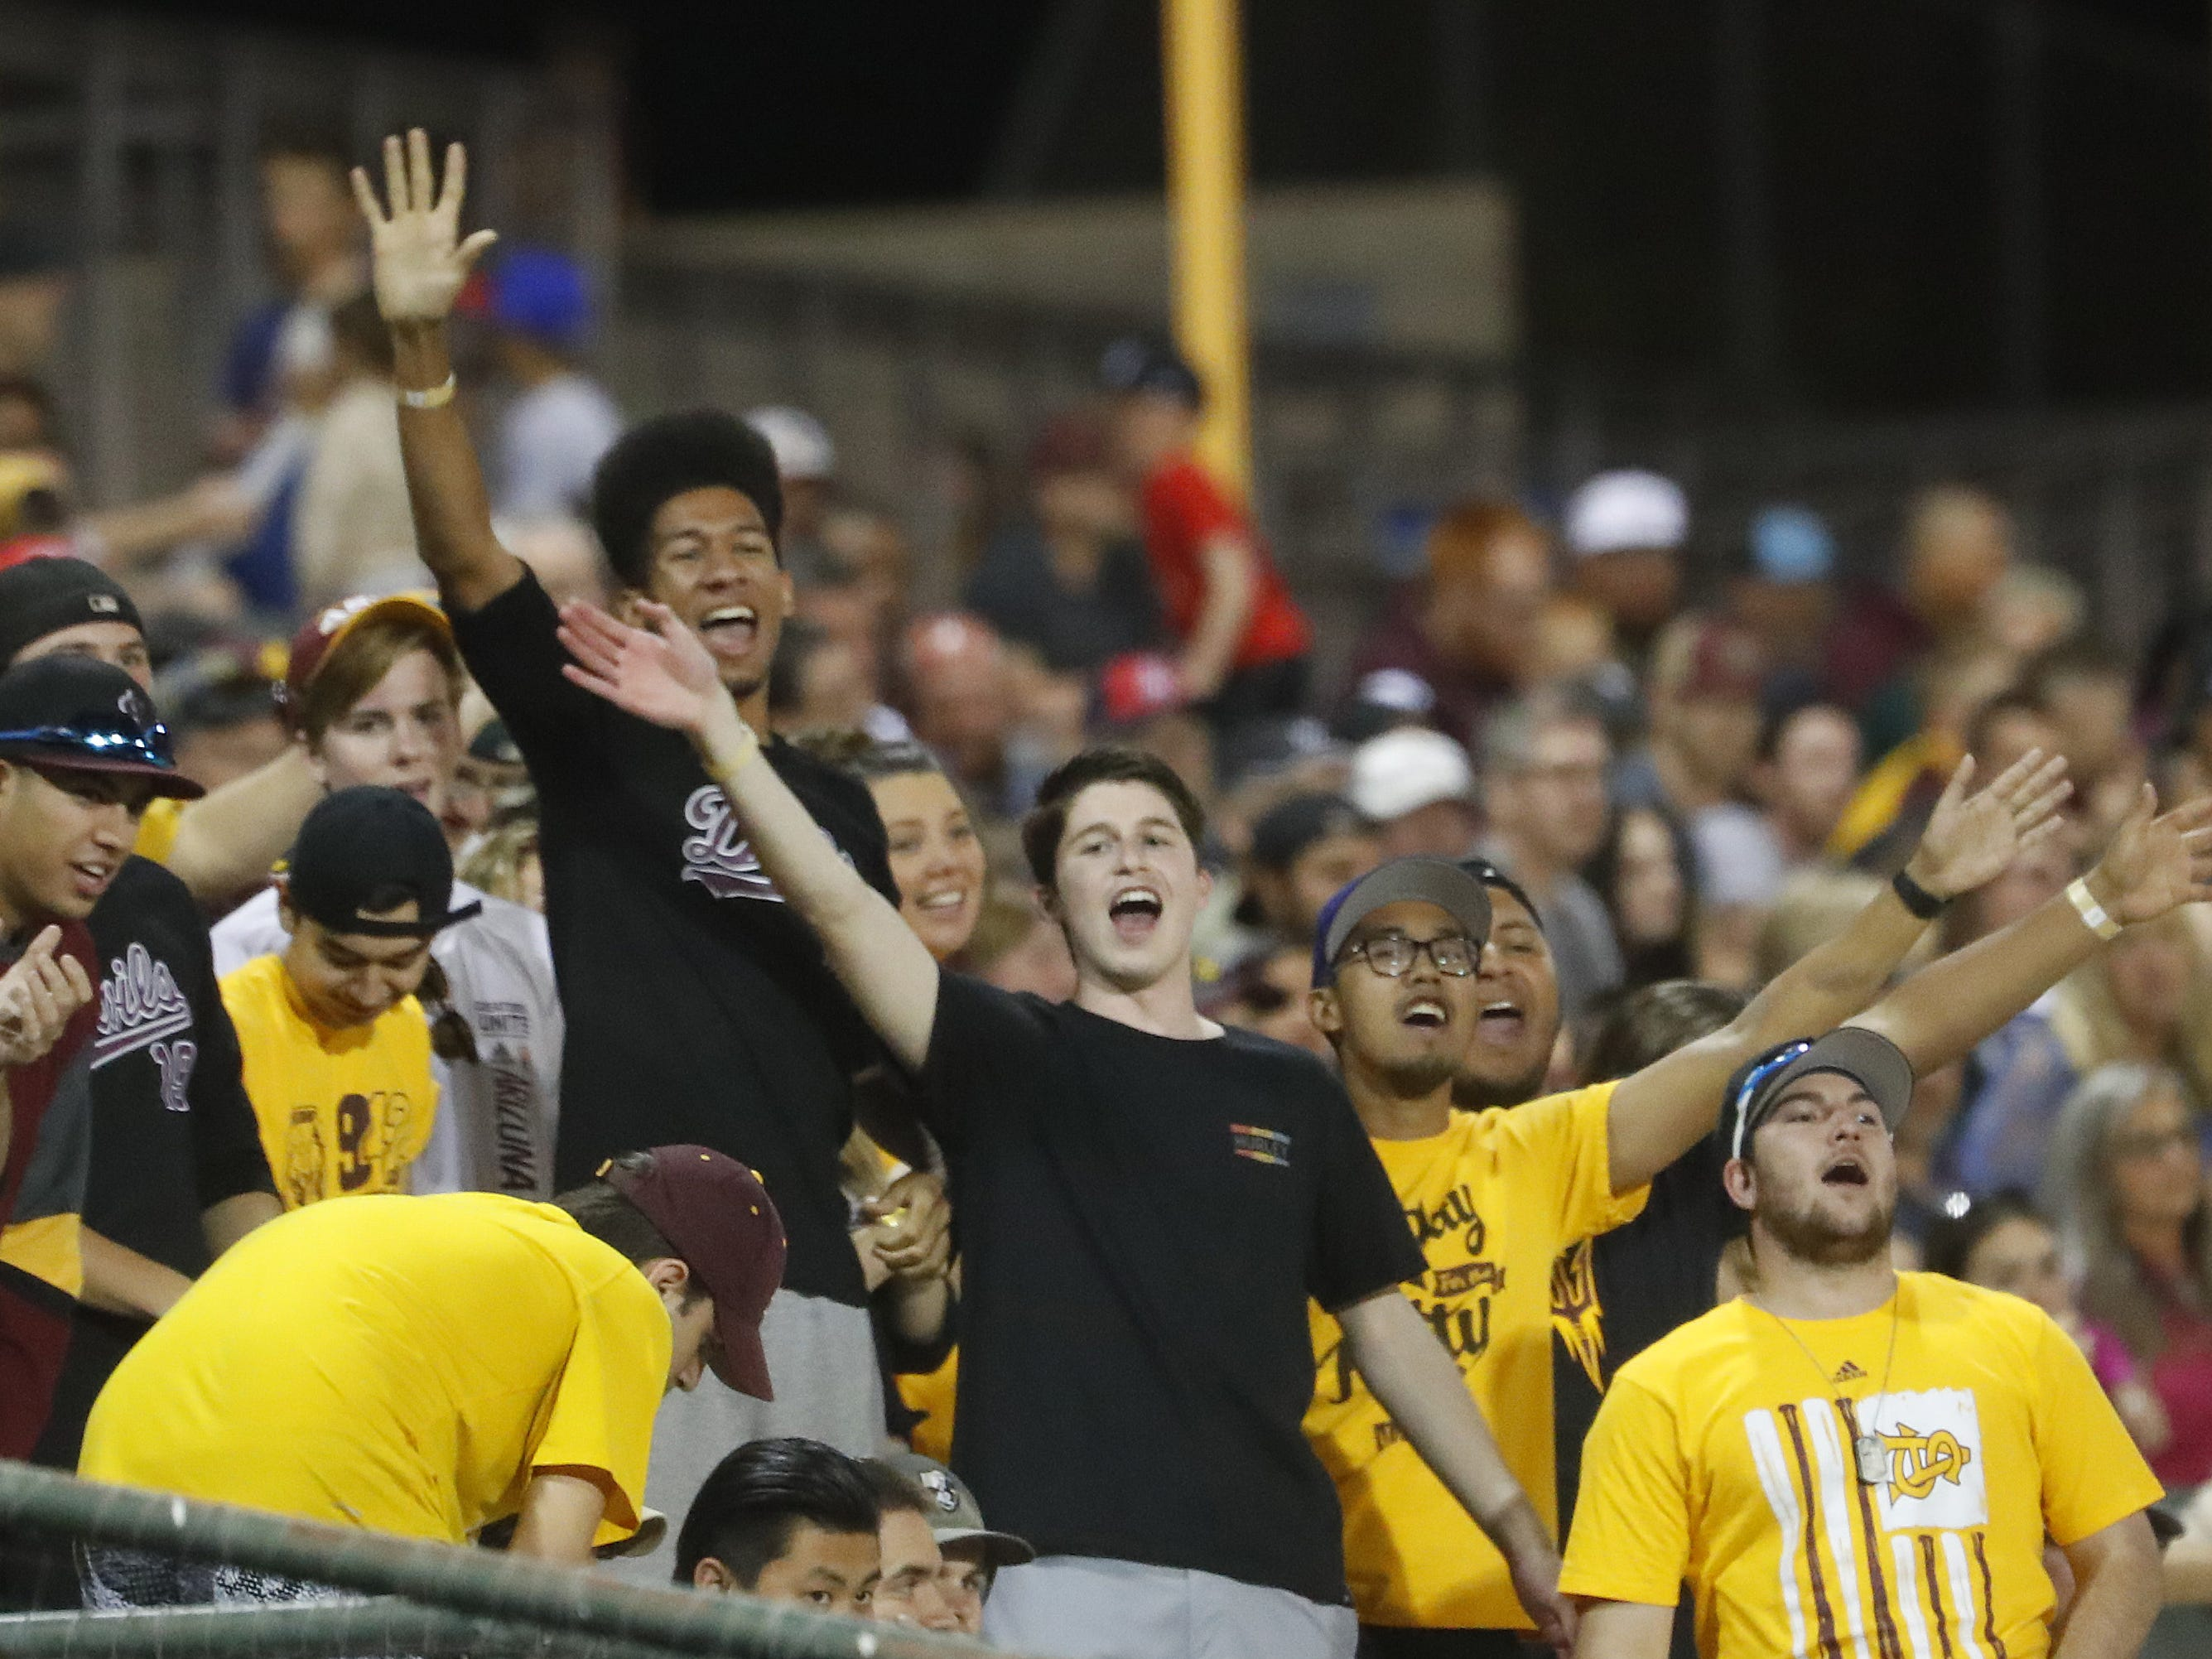 ASU fans wave bye to Arizona starting pitcher Quinn Flanagan (40) after Flanagan was pulled during the first inning at Phoenix Municipal Stadium in Phoenix, Ariz. on March 30, 2019.